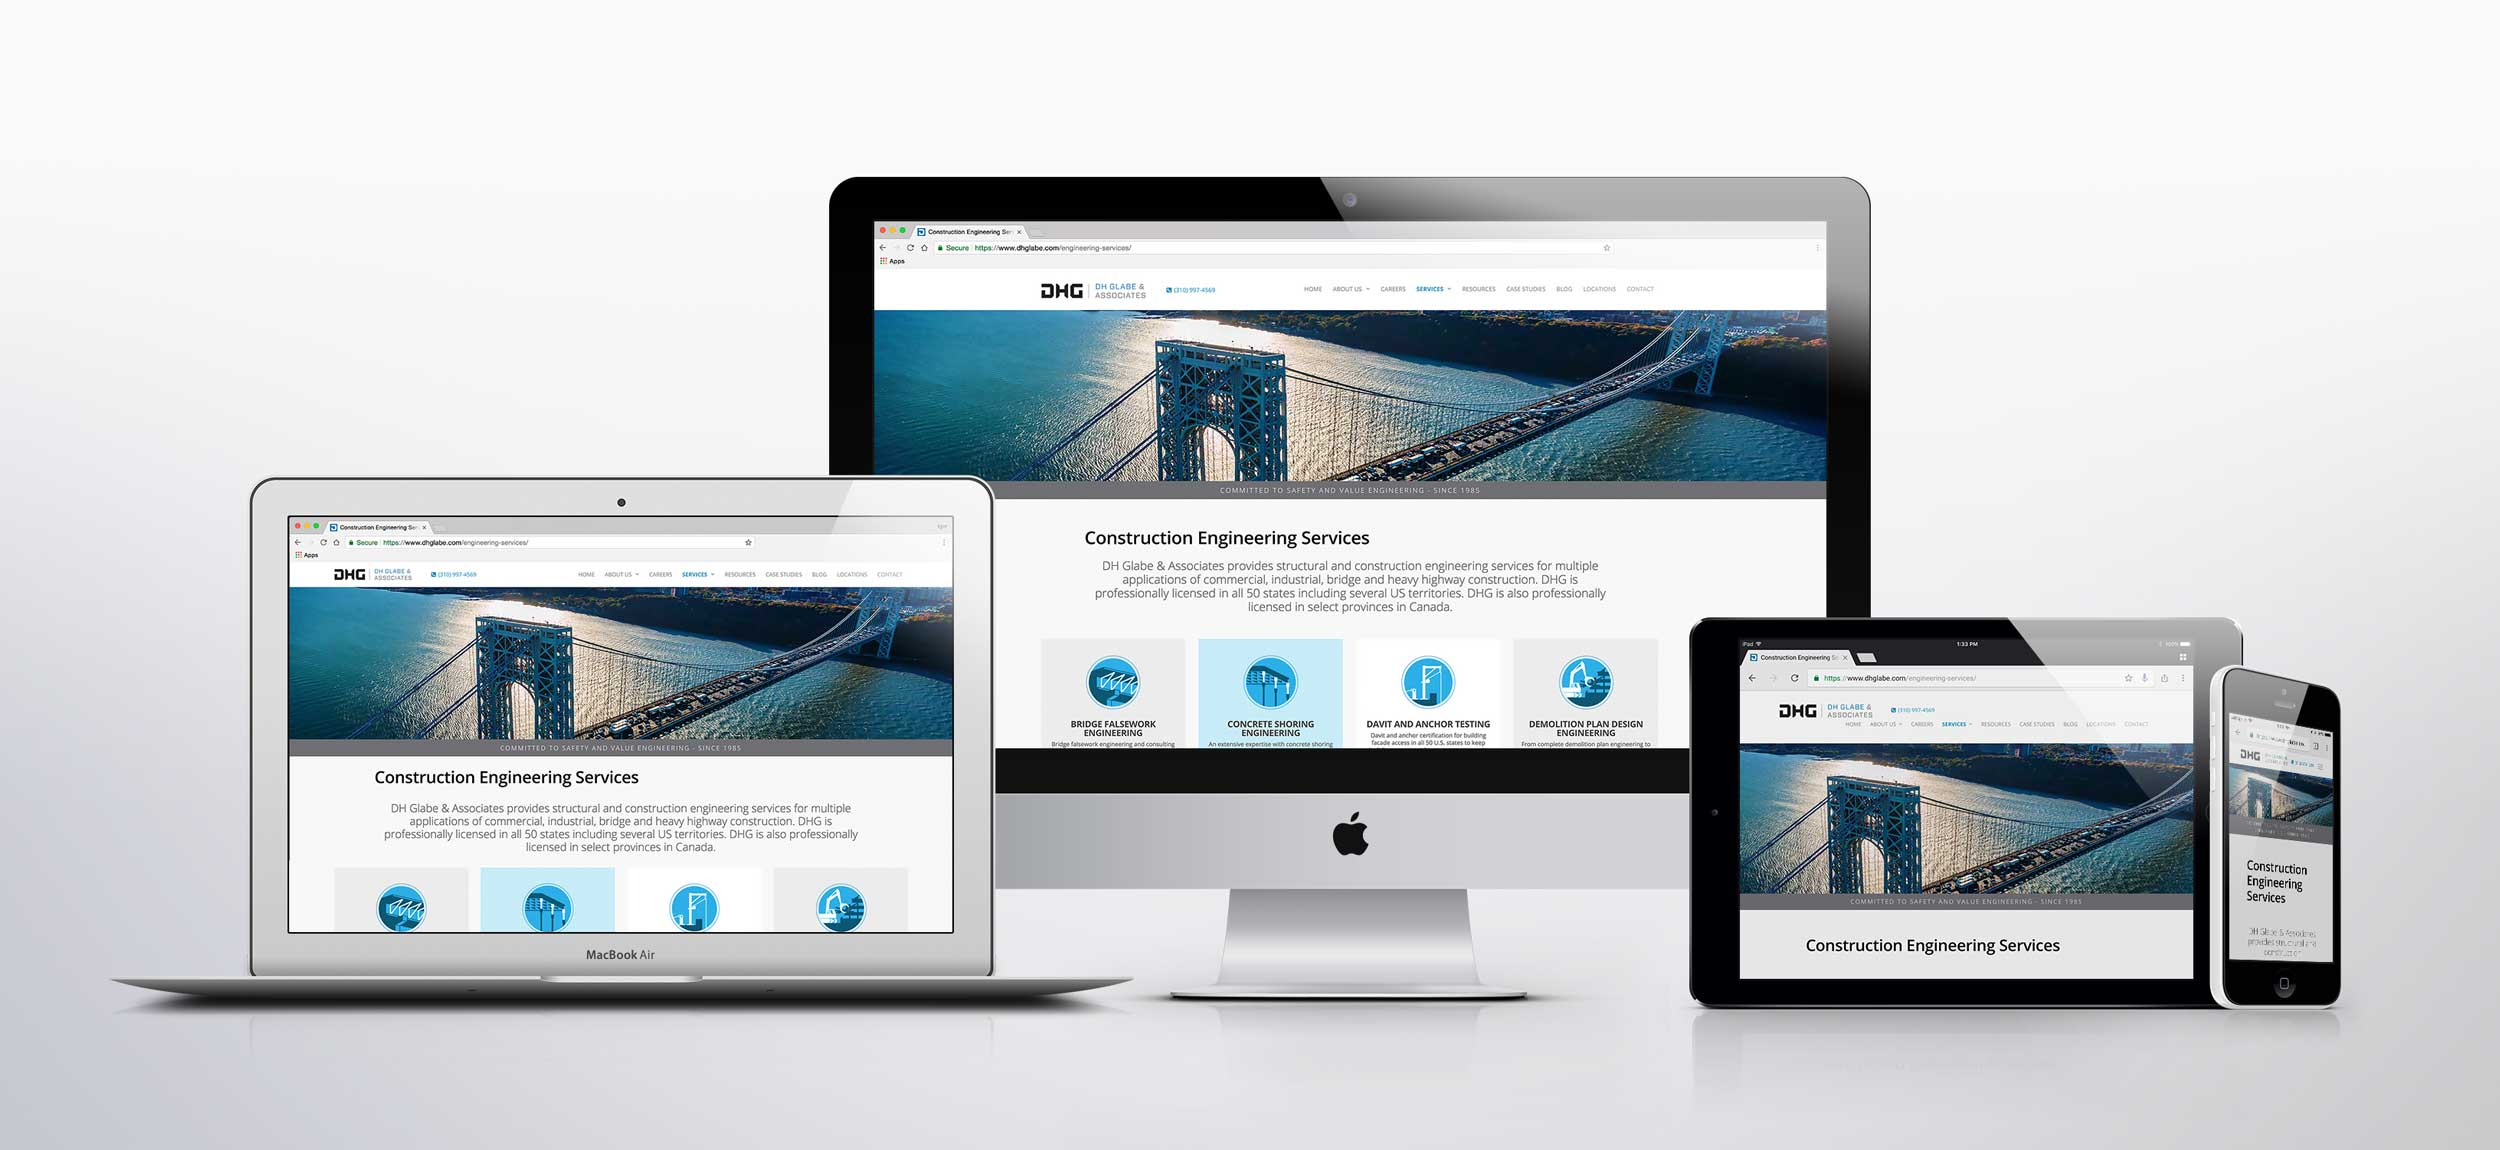 Website branding services responsive design